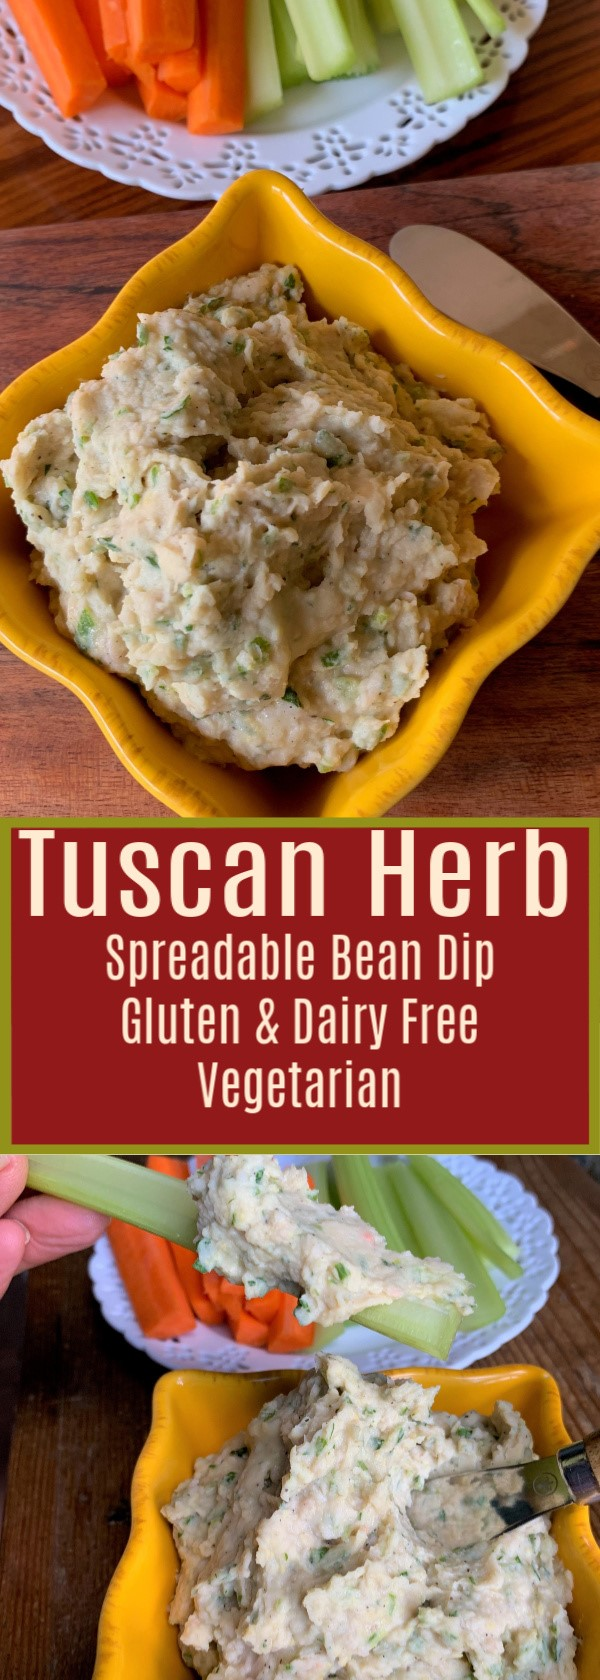 Tuscan Herb Spreadable Bean Dip. A delicious creamy, protein rich vegetarian accompaniment. Gluten Free & Dairy Free